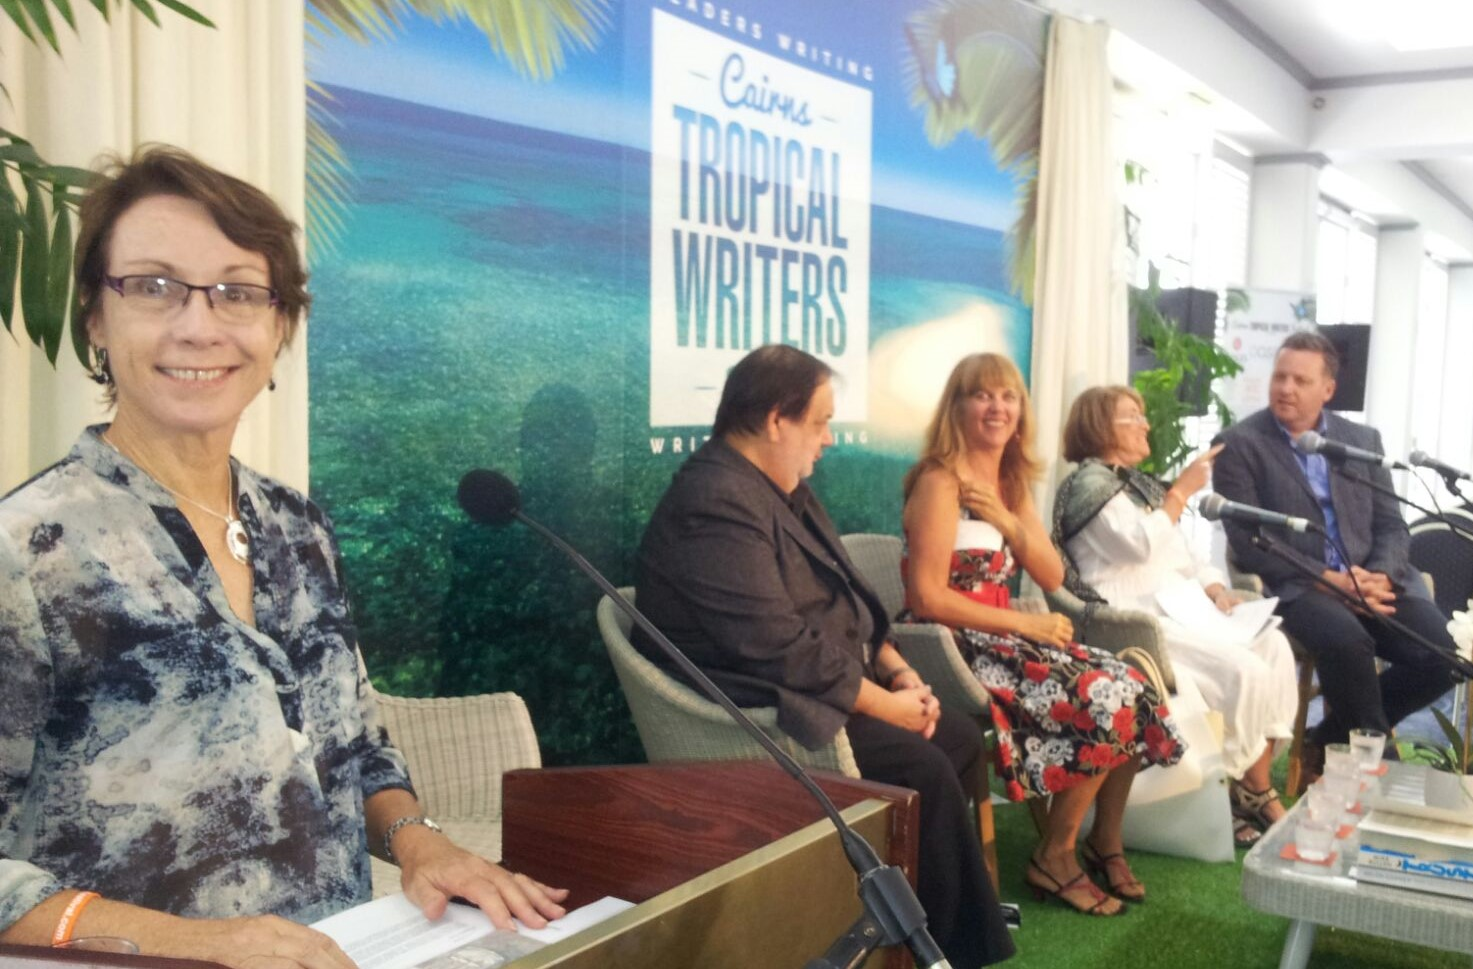 Angela Hosting the Biggest Book Club Panel at the 2016 Cairns Tropical Writers Festival